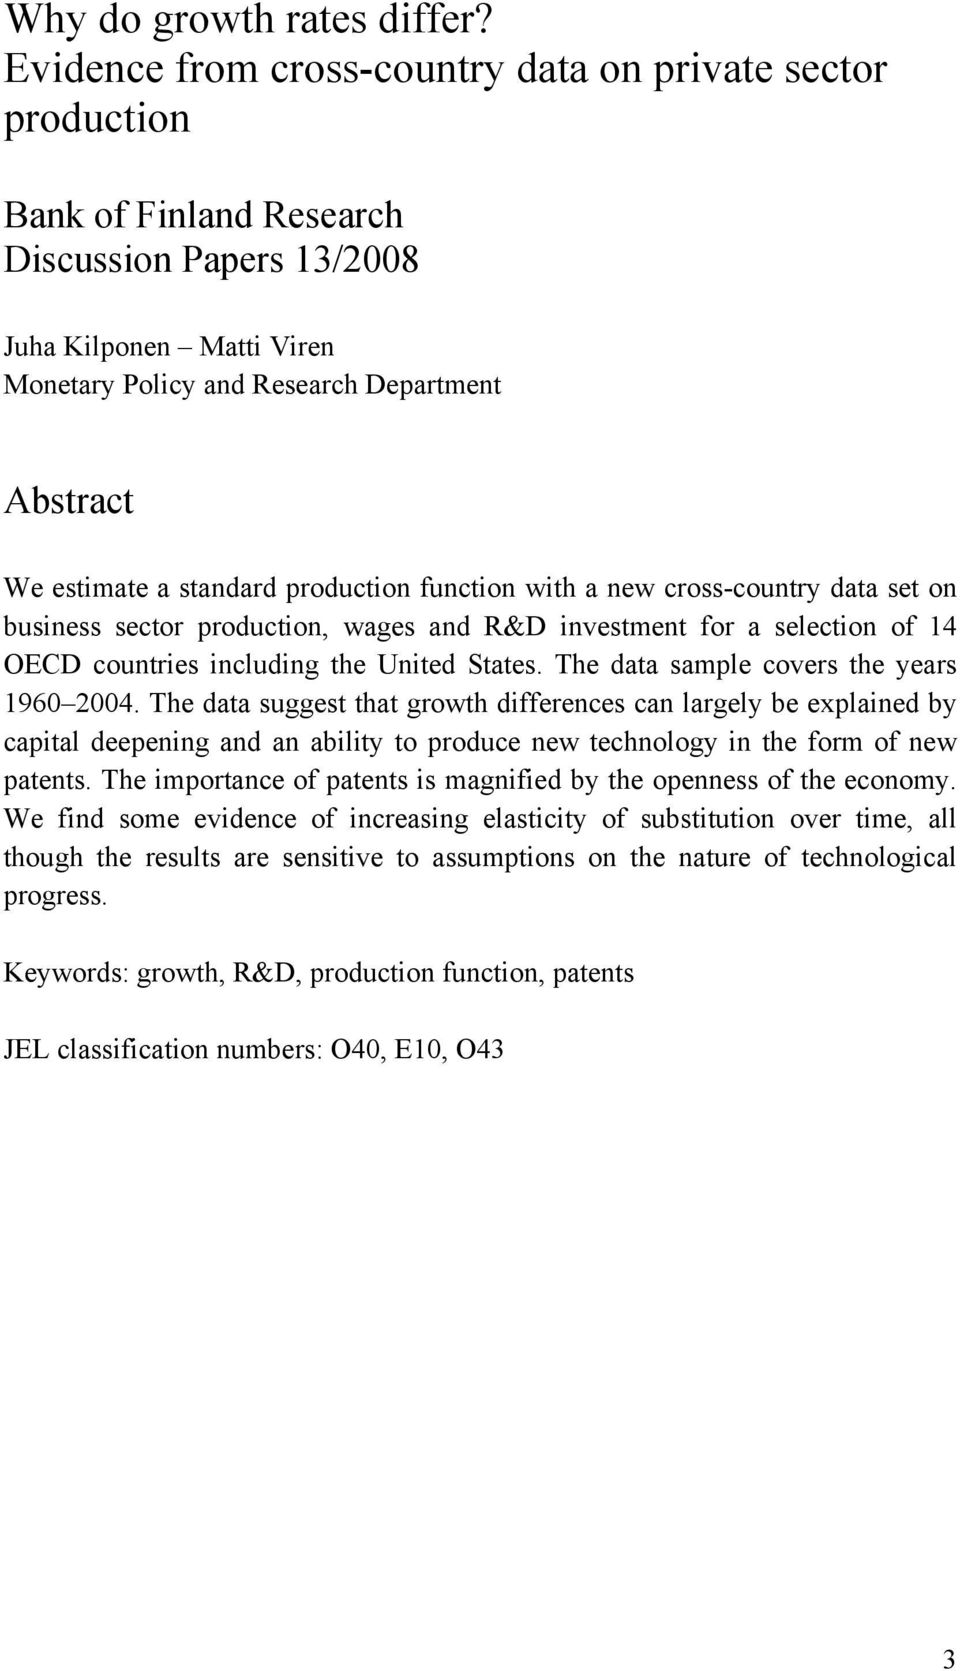 a standard production function with a new cross-country data set on business sector production, wages and R&D investment for a selection of 14 OECD countries including the United States.